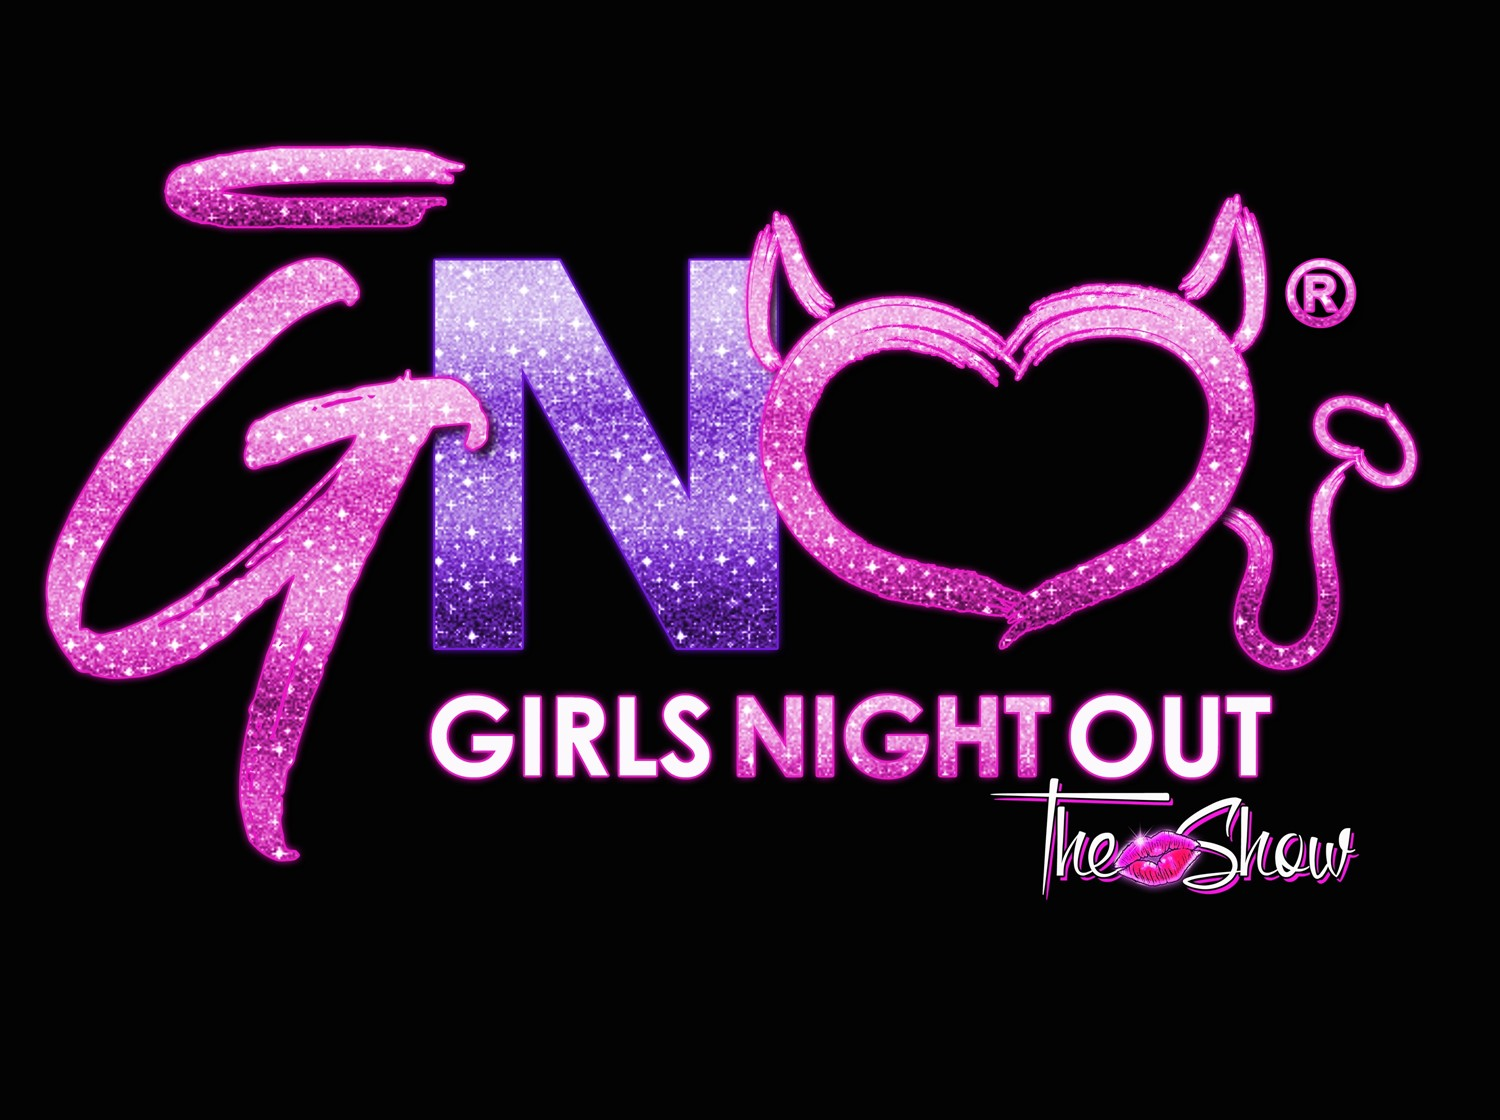 The Forge (18+) Joliet, IL on may. 12, 20:00@The Forge - Compra entradas y obtén información enGirls Night Out the Show tickets.girlsnightouttheshow.com